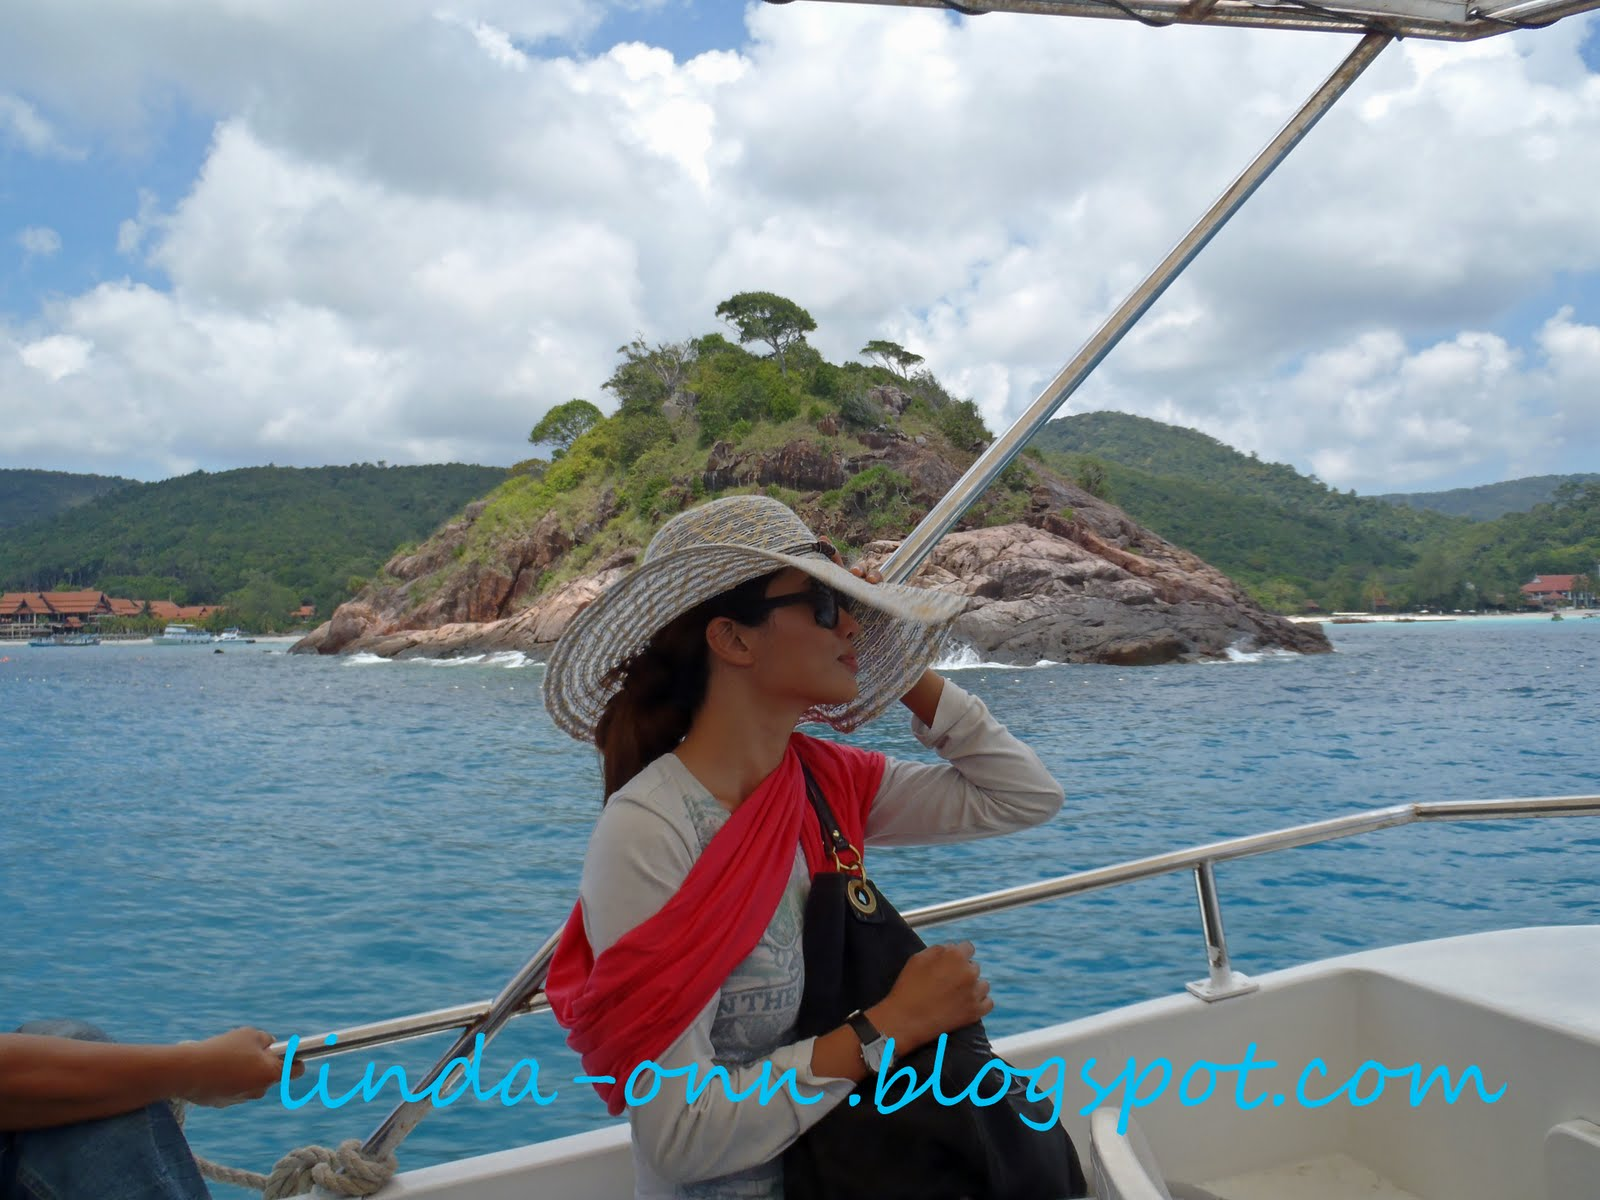 essay on trip to pulau redang Answered: hi everyone, is it possible to take water taxis on perhentians island and redang island and what is the cost especially for redang, we are staying at the taaras resort and it looks a bit isolated the hotel offer snorkeling trip but quite.